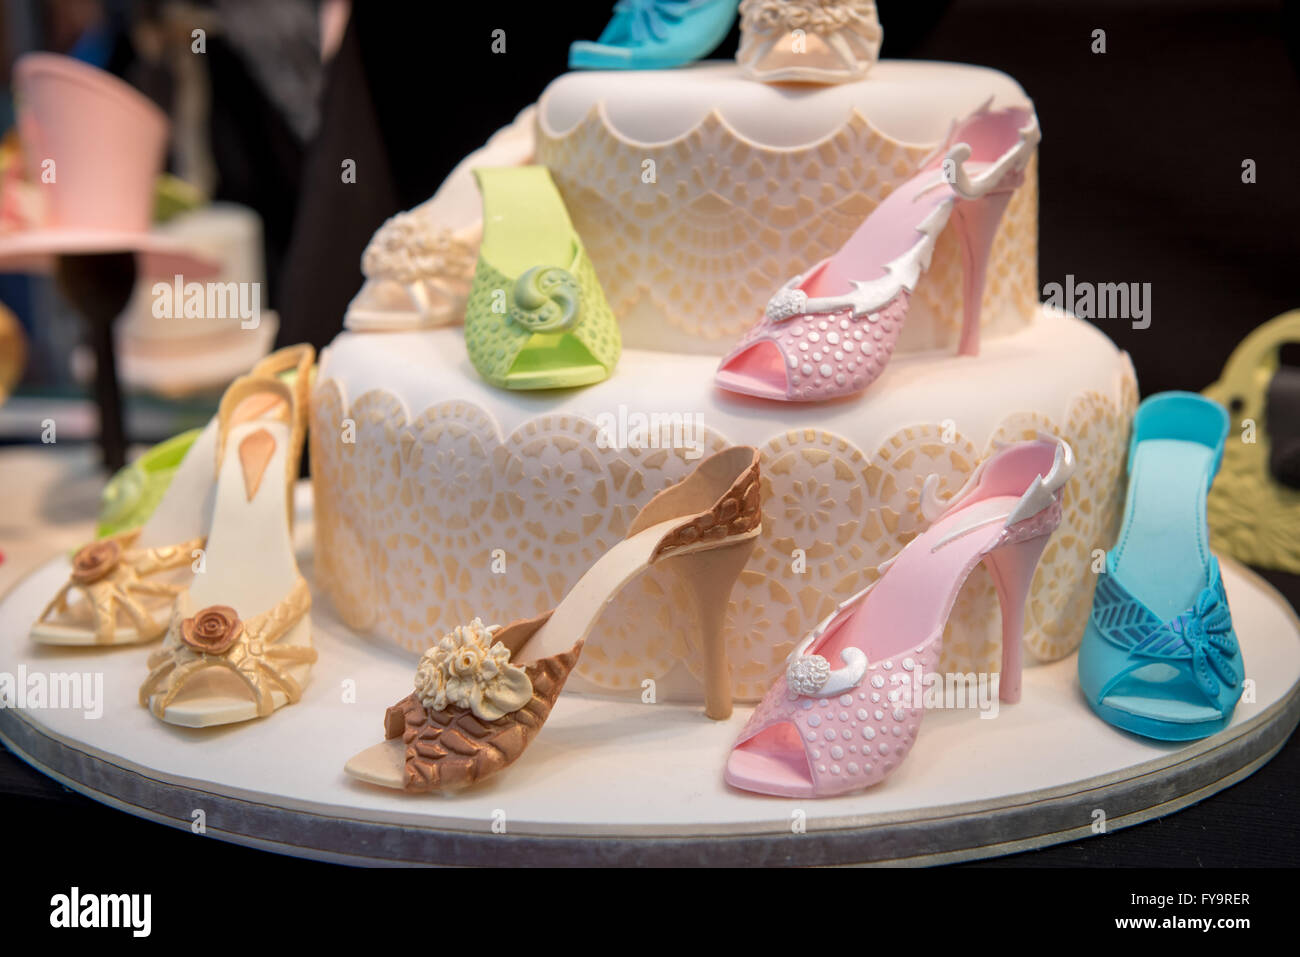 Cake Decorating Stock Images : Edible high heels shoes birthday cake decor at Cake ...